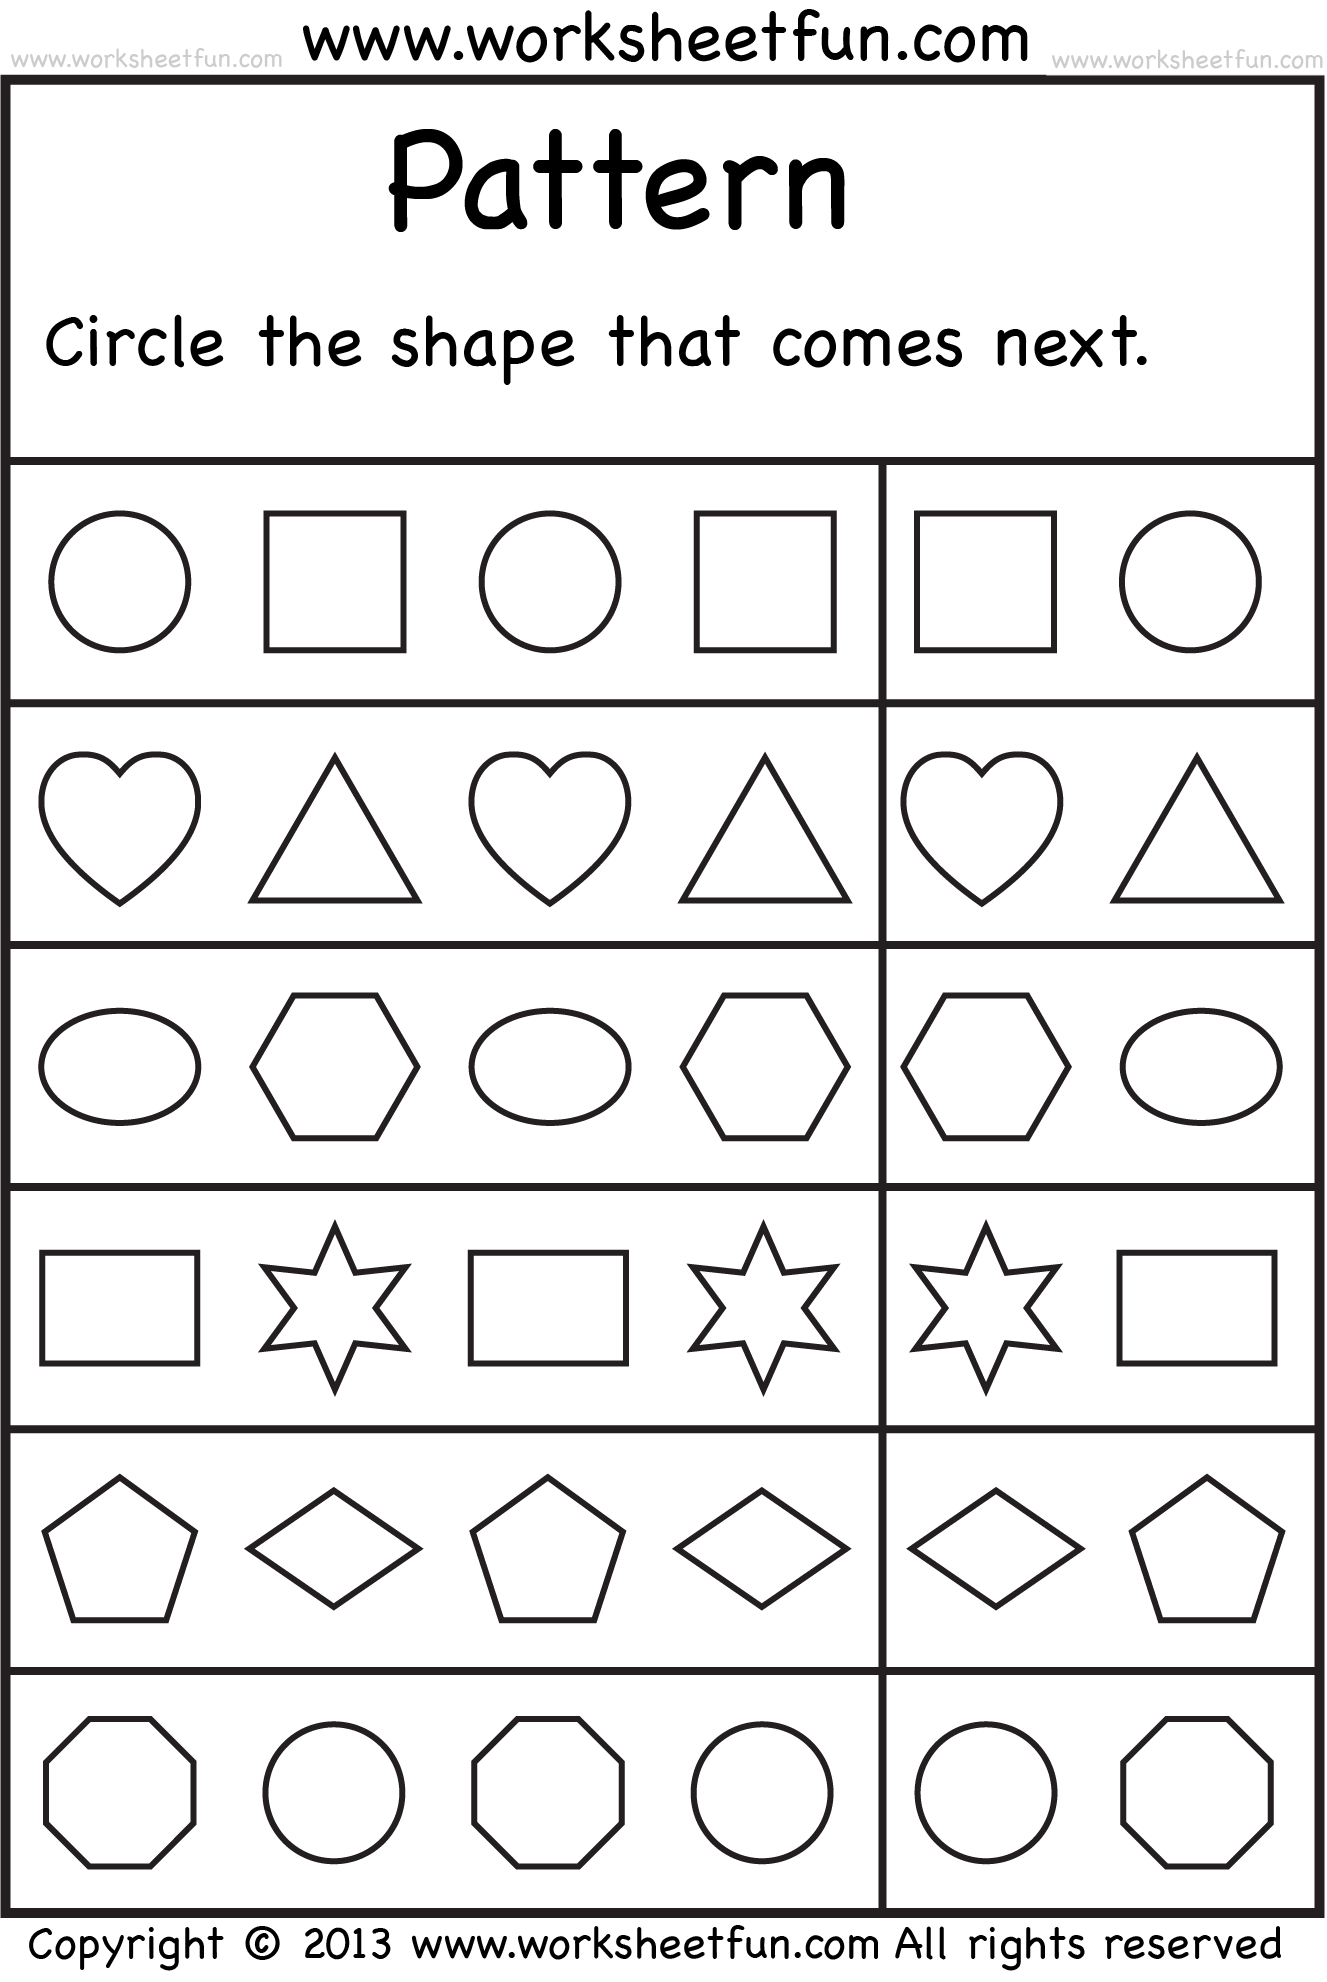 Weirdmailus  Sweet  Images About School Worksheets On Pinterest  Number Words  With Glamorous  Images About School Worksheets On Pinterest  Number Words Alphabet Worksheets And Free Printable Kindergarten Worksheets With Delightful Double Multiplication Worksheets Also Reading Worksheet For Kindergarten In Addition Phlebotomy Worksheets And Long Division Th Grade Worksheet As Well As Free Self Esteem Worksheets Additionally Point Of View Worksheets Th Grade From Pinterestcom With Weirdmailus  Glamorous  Images About School Worksheets On Pinterest  Number Words  With Delightful  Images About School Worksheets On Pinterest  Number Words Alphabet Worksheets And Free Printable Kindergarten Worksheets And Sweet Double Multiplication Worksheets Also Reading Worksheet For Kindergarten In Addition Phlebotomy Worksheets From Pinterestcom